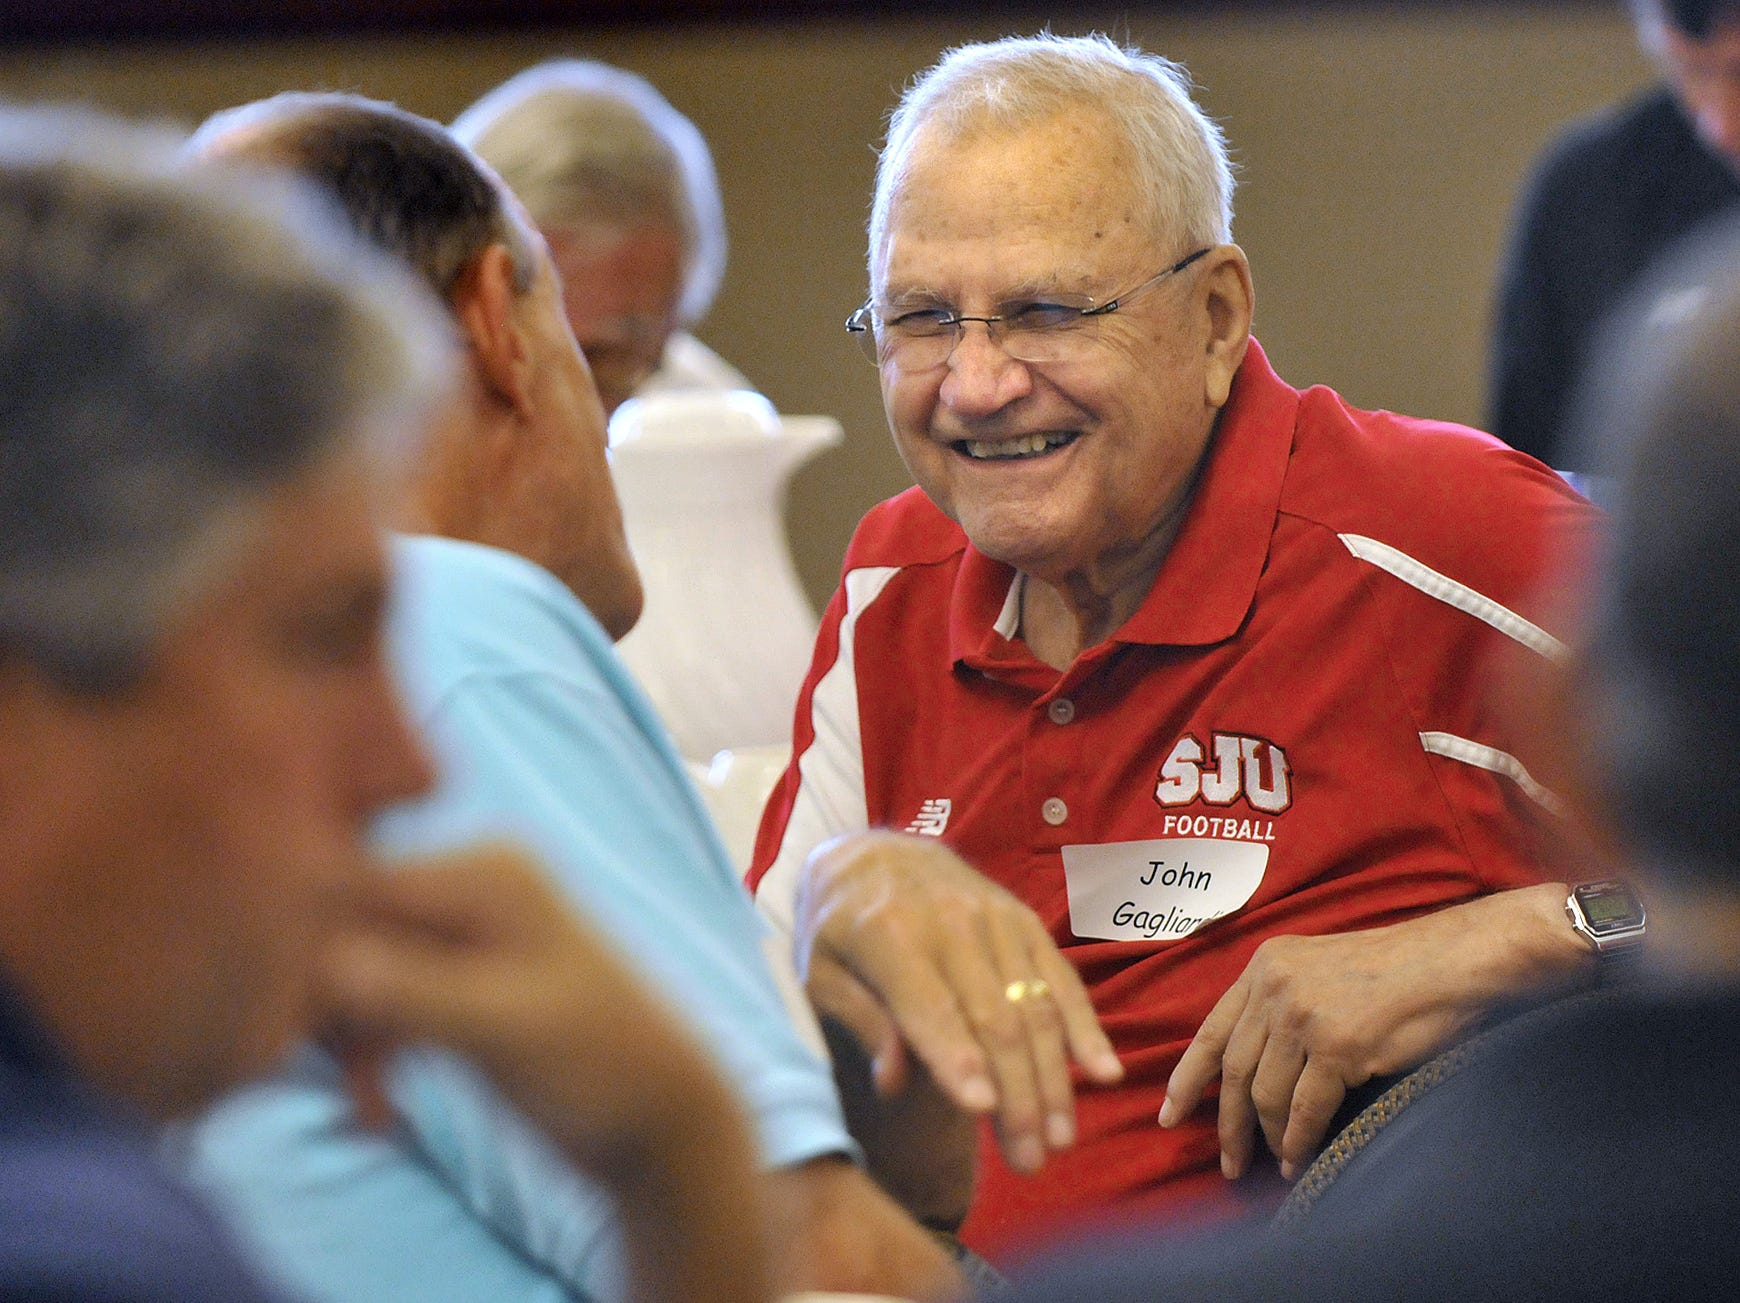 St. John's University head football coach John Gagliardi shared a laugh with an attendee at one of the traditional SJU football kickoff luncheons.